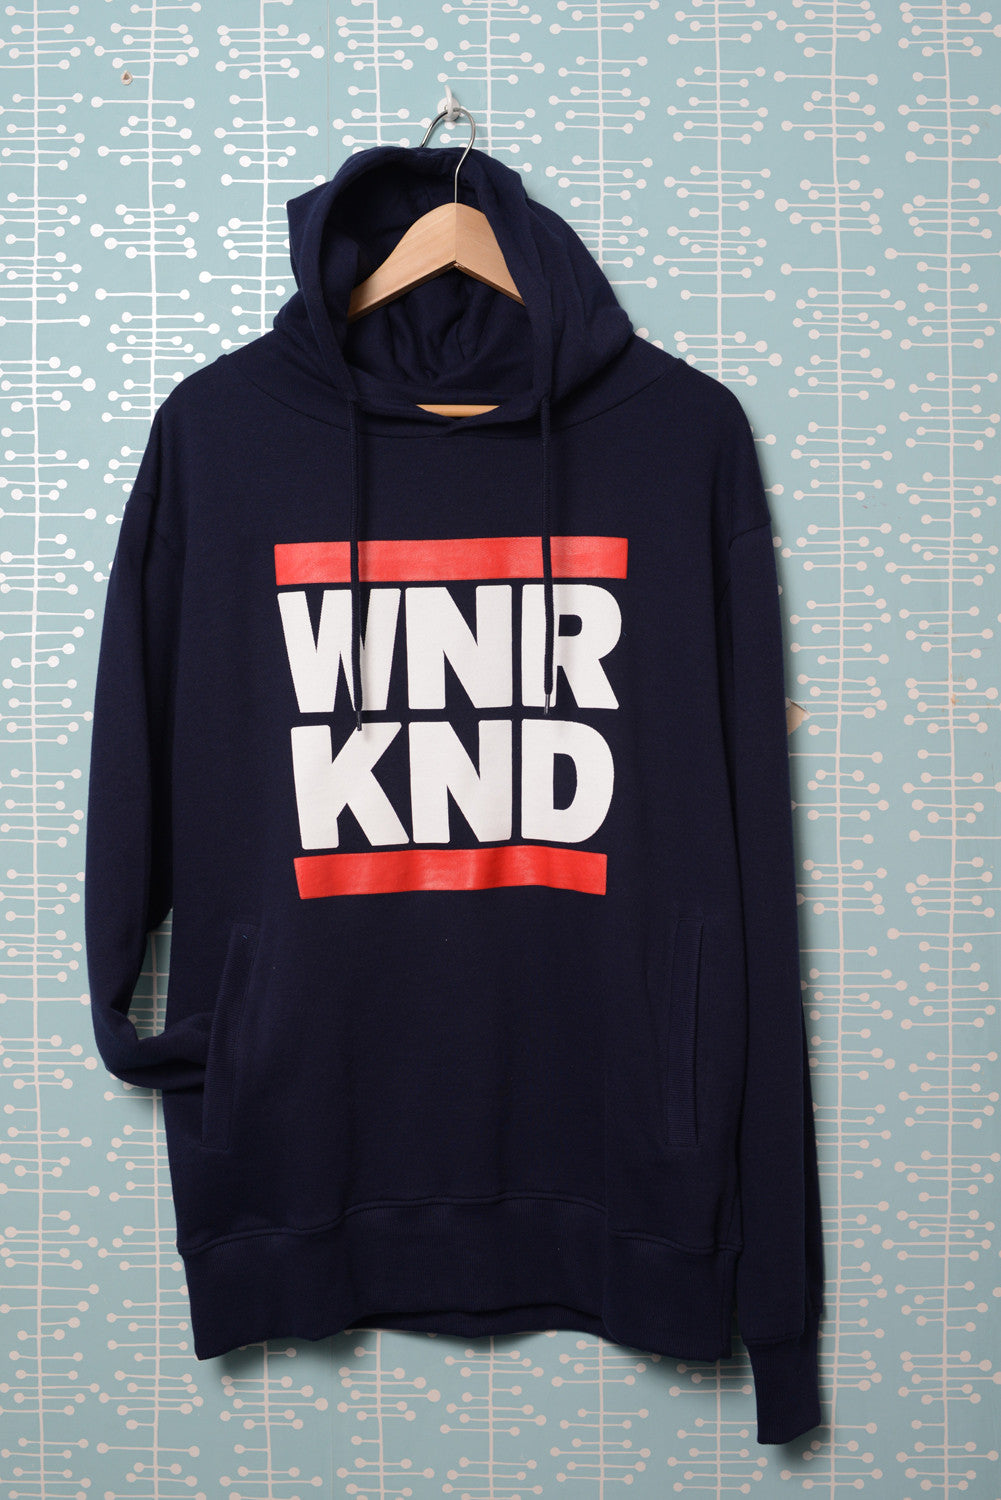 WNRKND Fashion Pullover Hoody navy blue